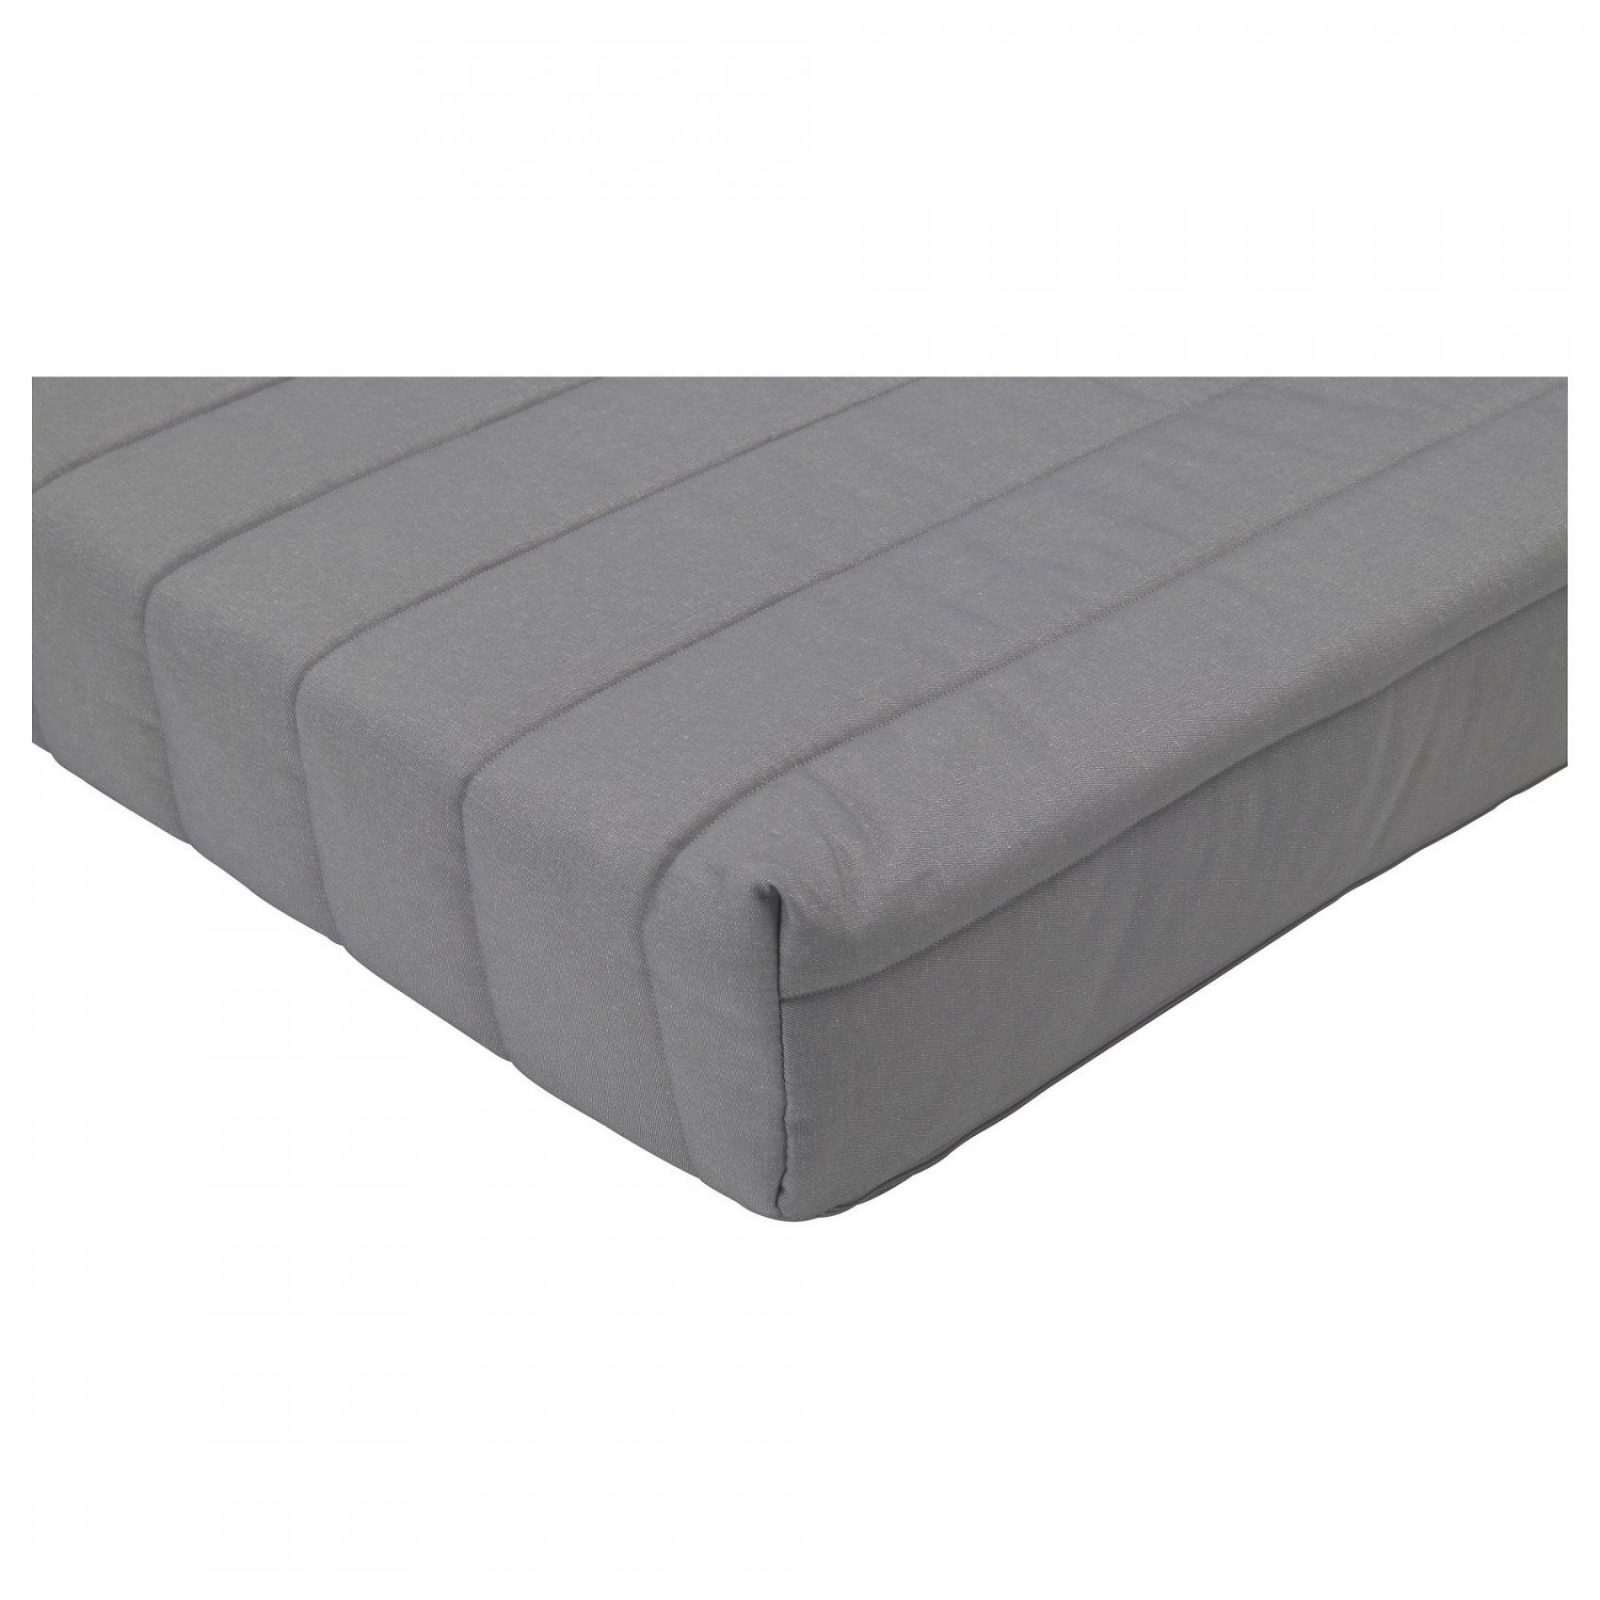 Ikea Ps Bettsofa Matratze Alte Matratzen Affordable Berraschend Sofa Matratze Diy With Alte